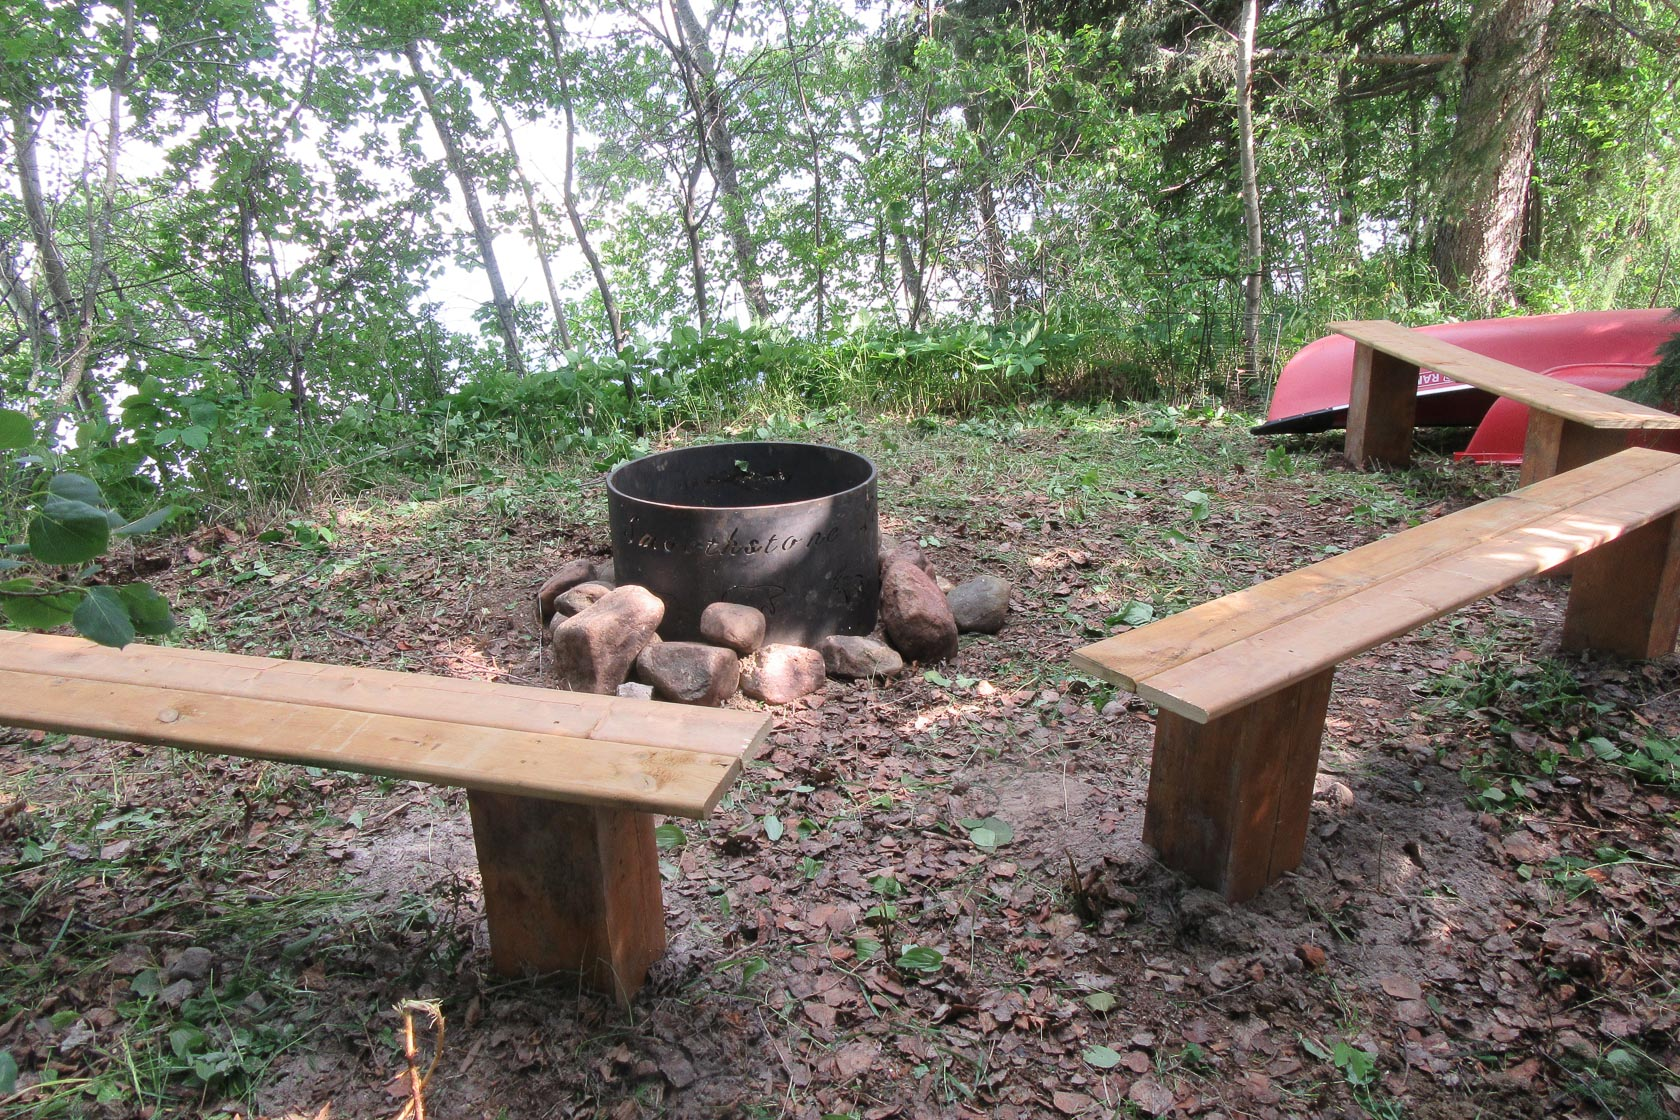 A fire pit on the shores of Smoothstone Lake Lodge in Saskatchewan, Canada. There are two wooden benches and rocks around the metal pit.